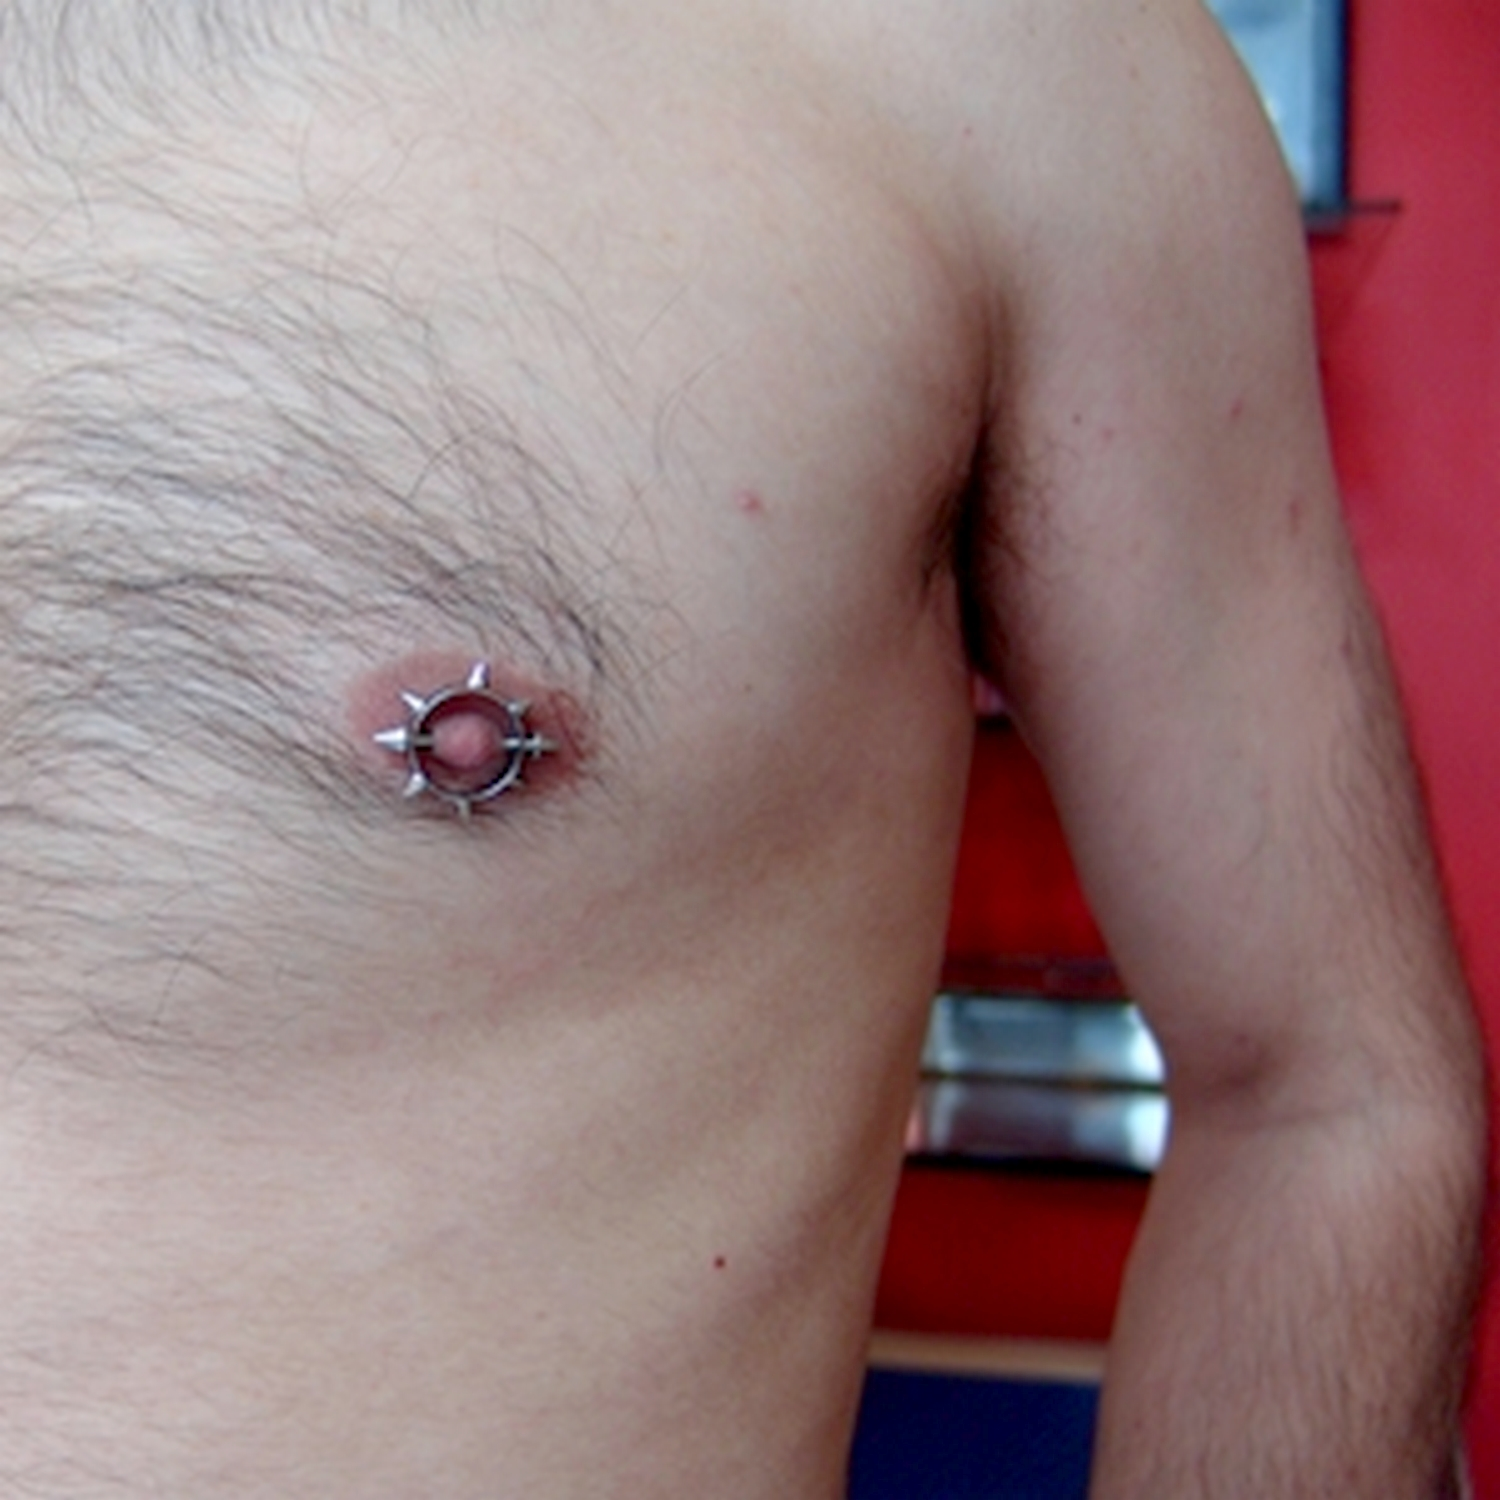 nipple,piercing,besiktas